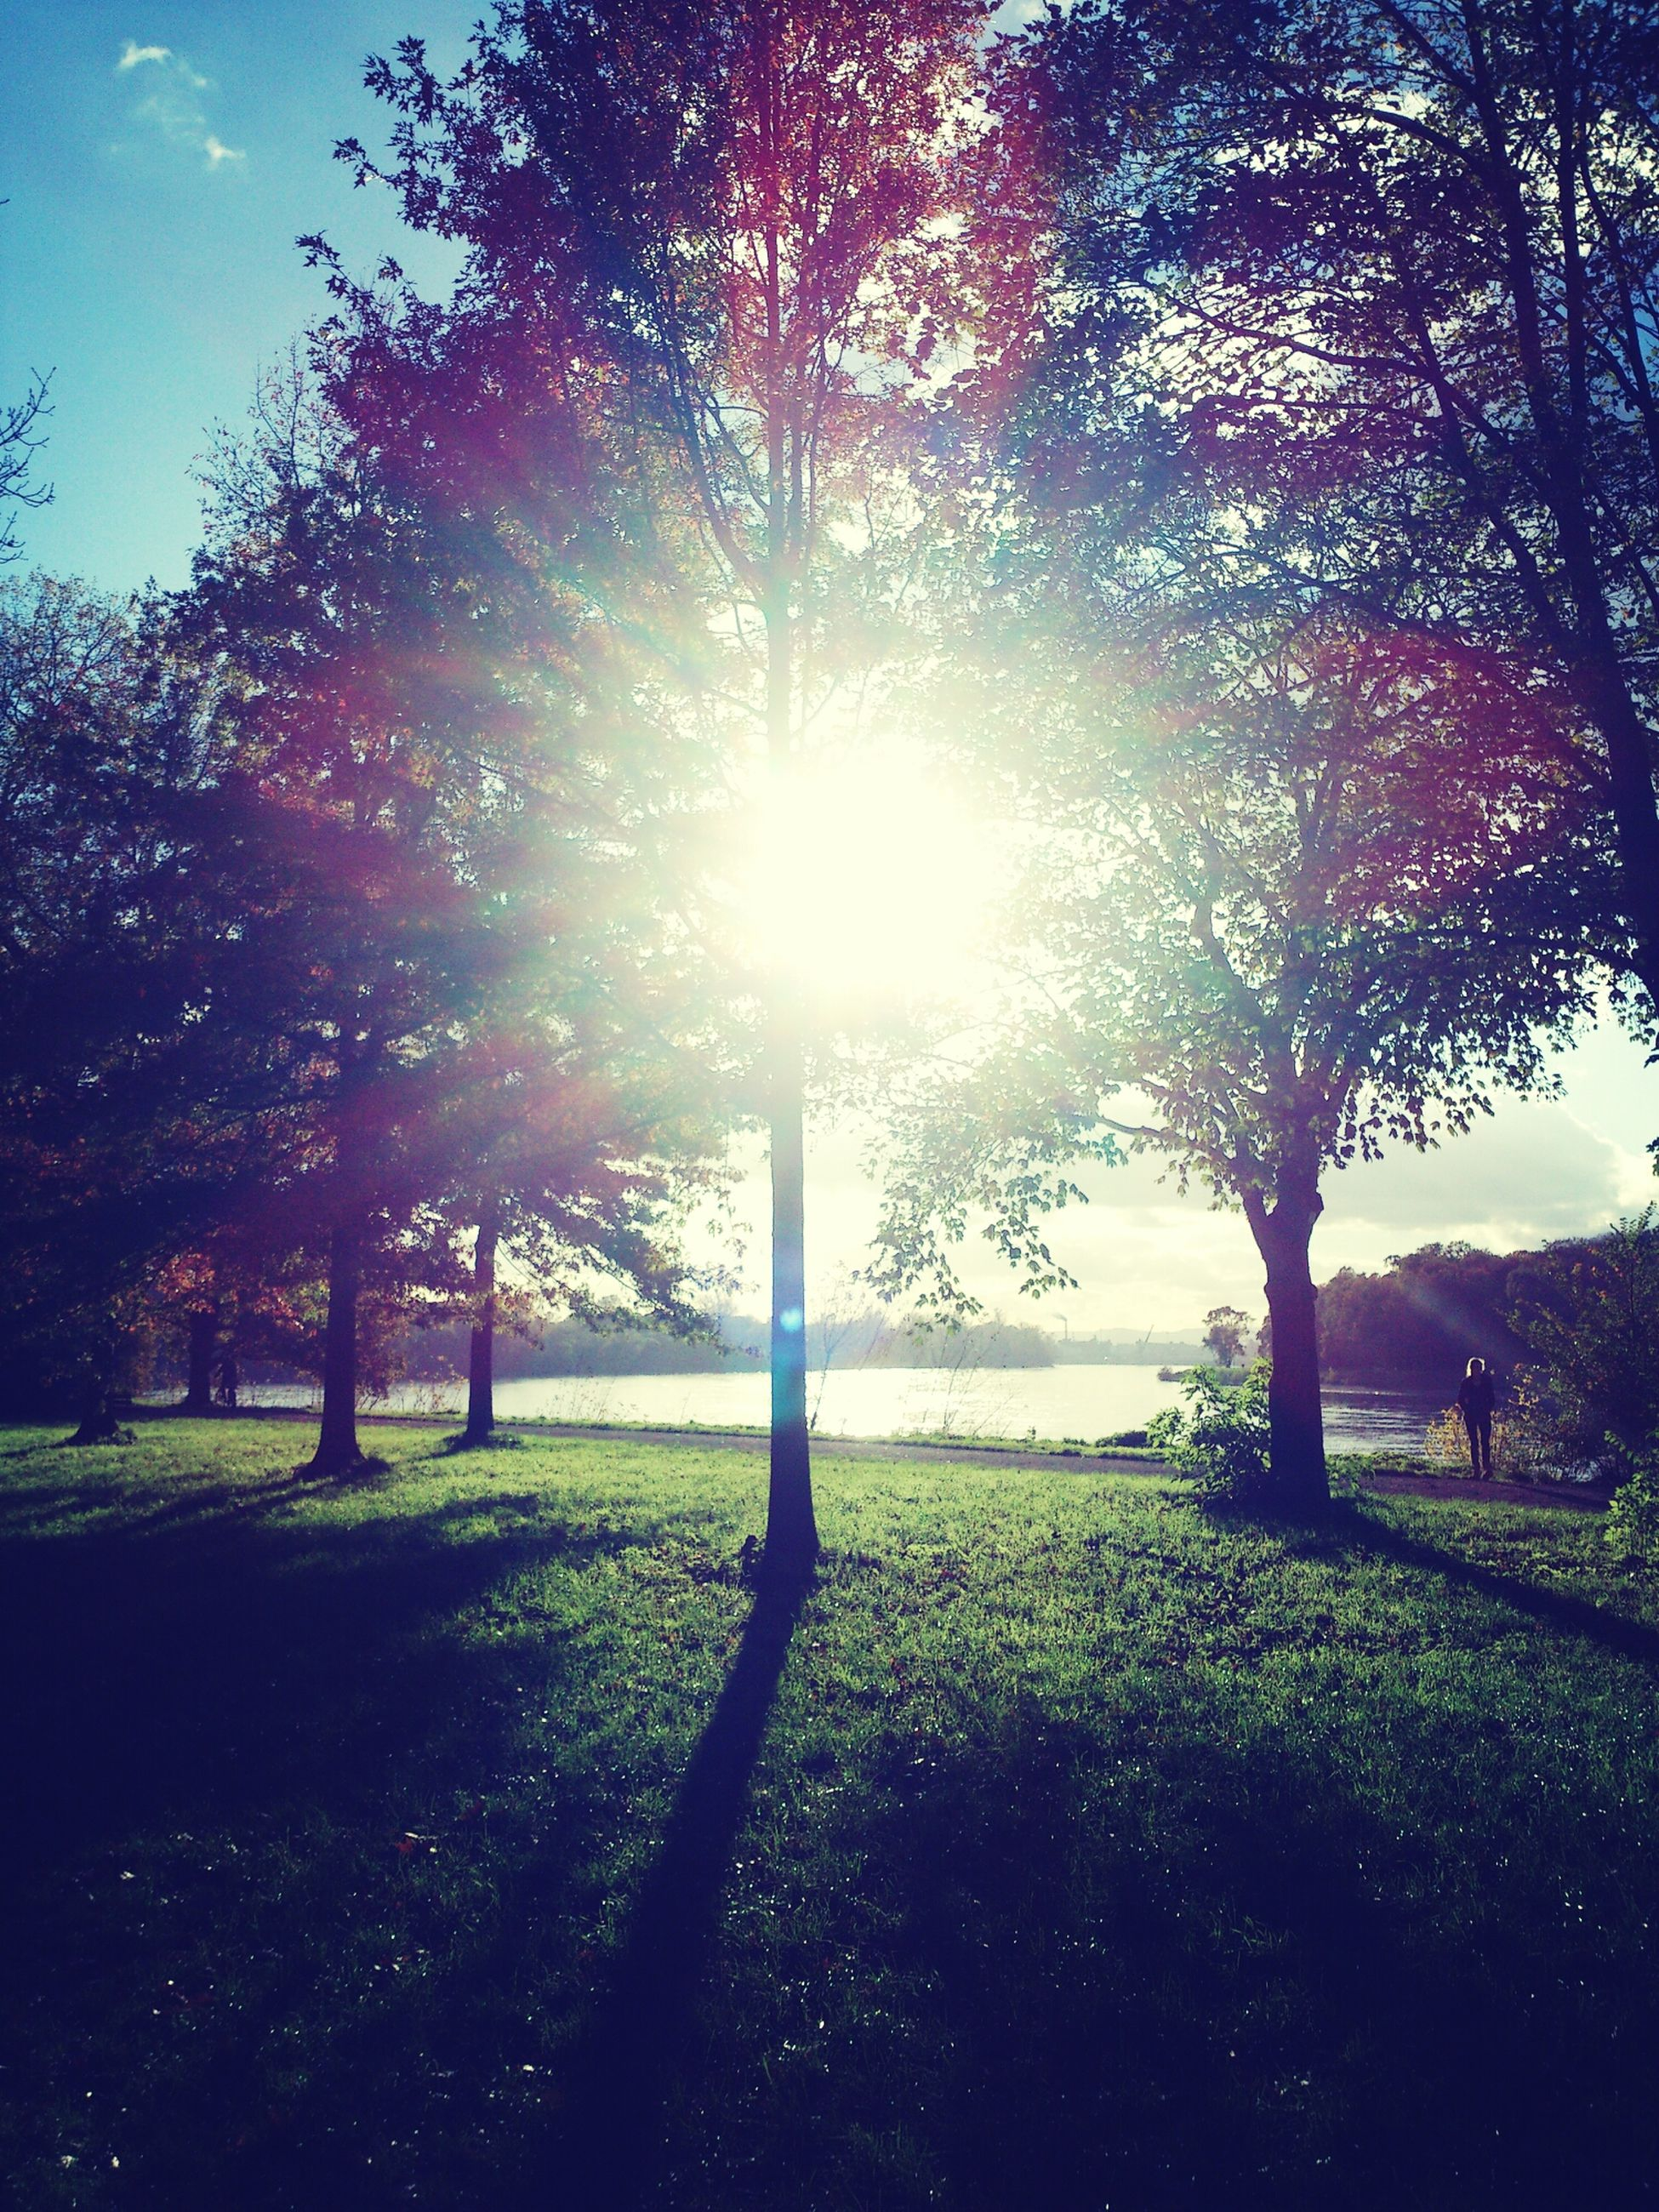 tree, sun, sunbeam, sunlight, grass, lens flare, tranquility, field, tranquil scene, growth, nature, sky, beauty in nature, park - man made space, landscape, sunny, grassy, scenics, back lit, shadow